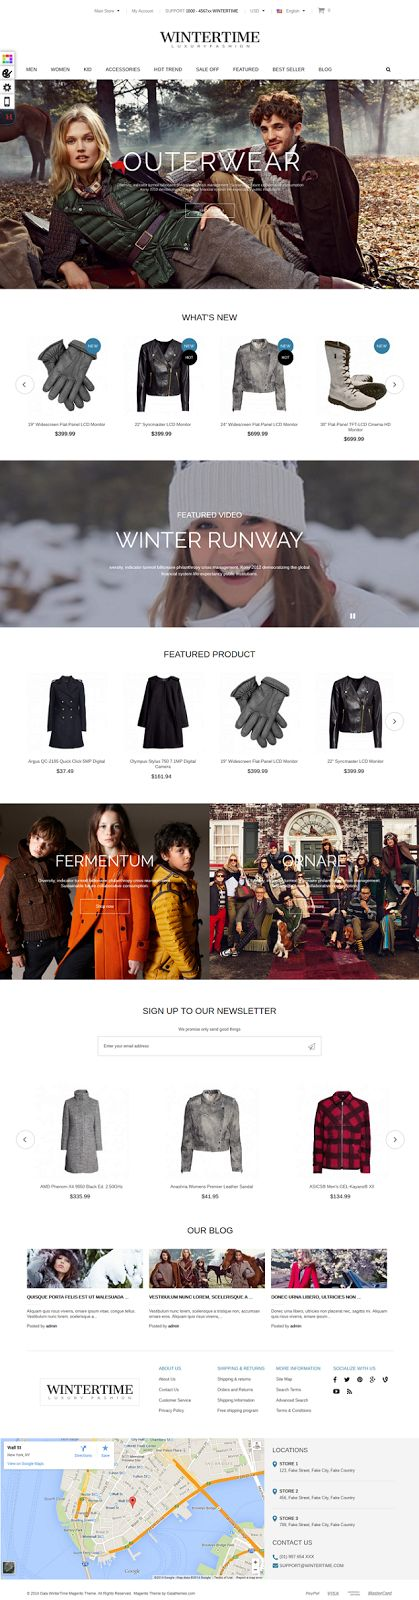 Gala Wintertime New Responsive Magento Theme #eCommerce #fashion #store #template